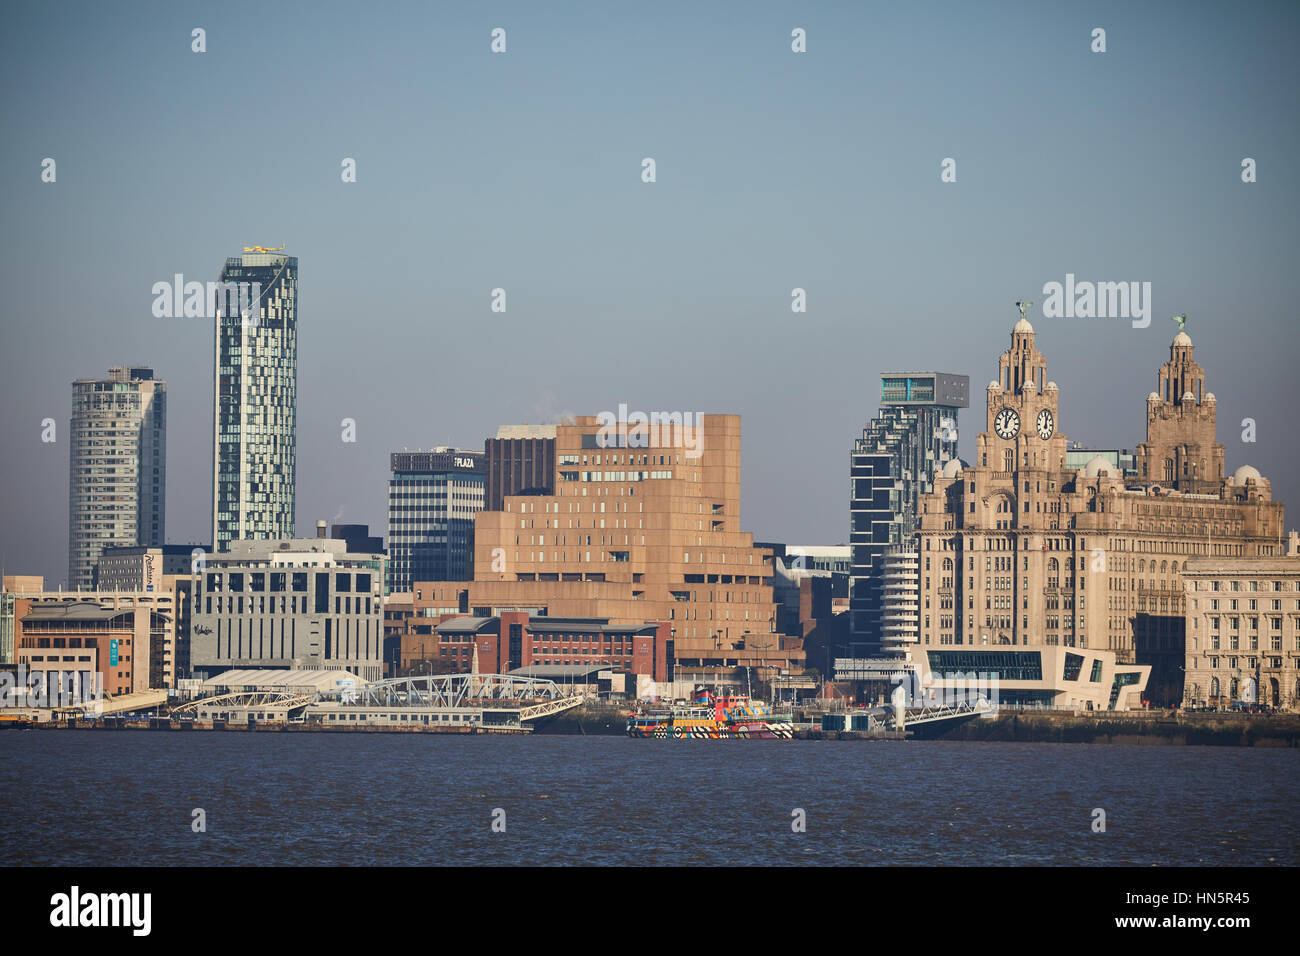 From Birkenhead side of the River Mersey looking out over Liverpool city centre on a blue sky day at landmark waterfront - Stock Image